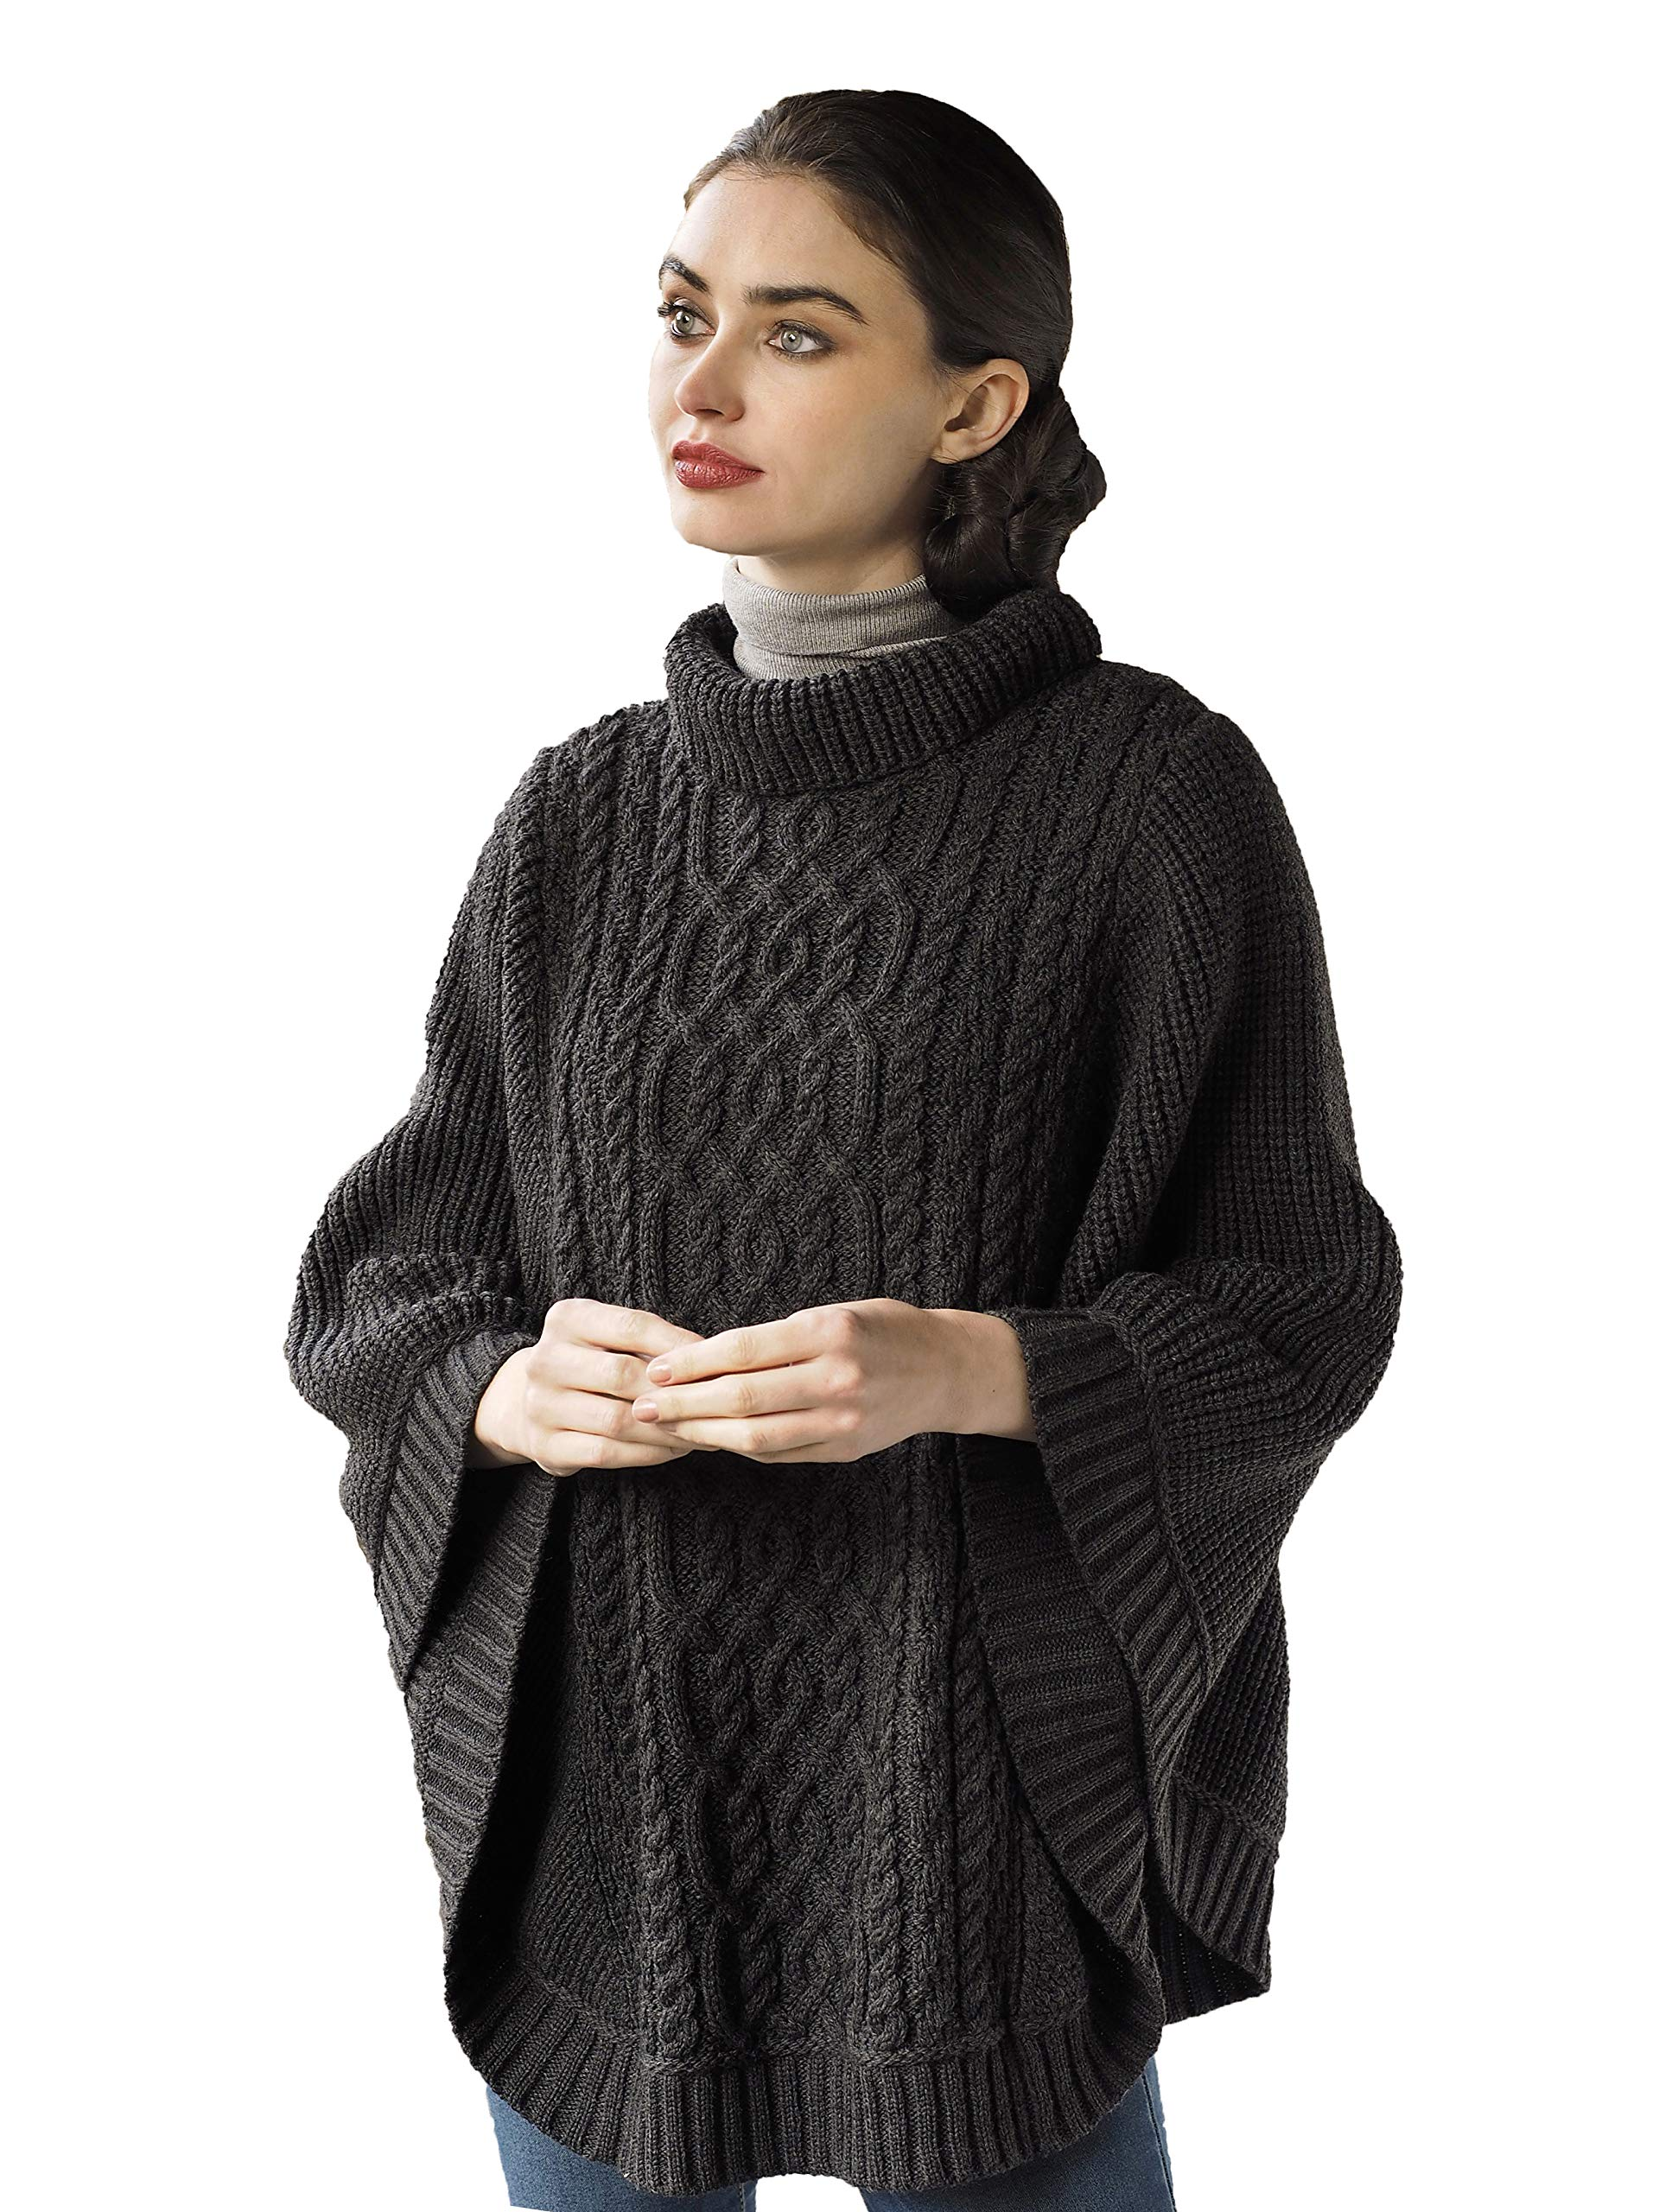 Knitting Pattern Fisherman Sweater - 1000 Free Patterns